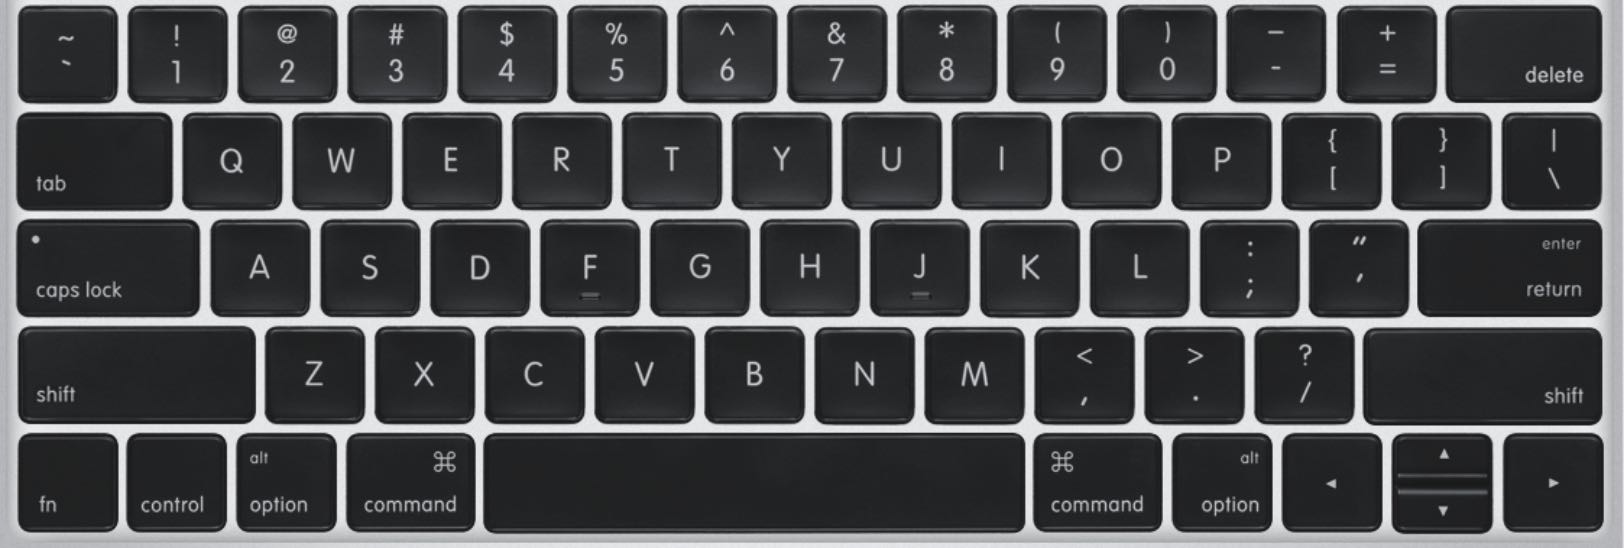 touchbar-macbook-pro-2nd-gen-butterfly-keyboard-keys.jpg